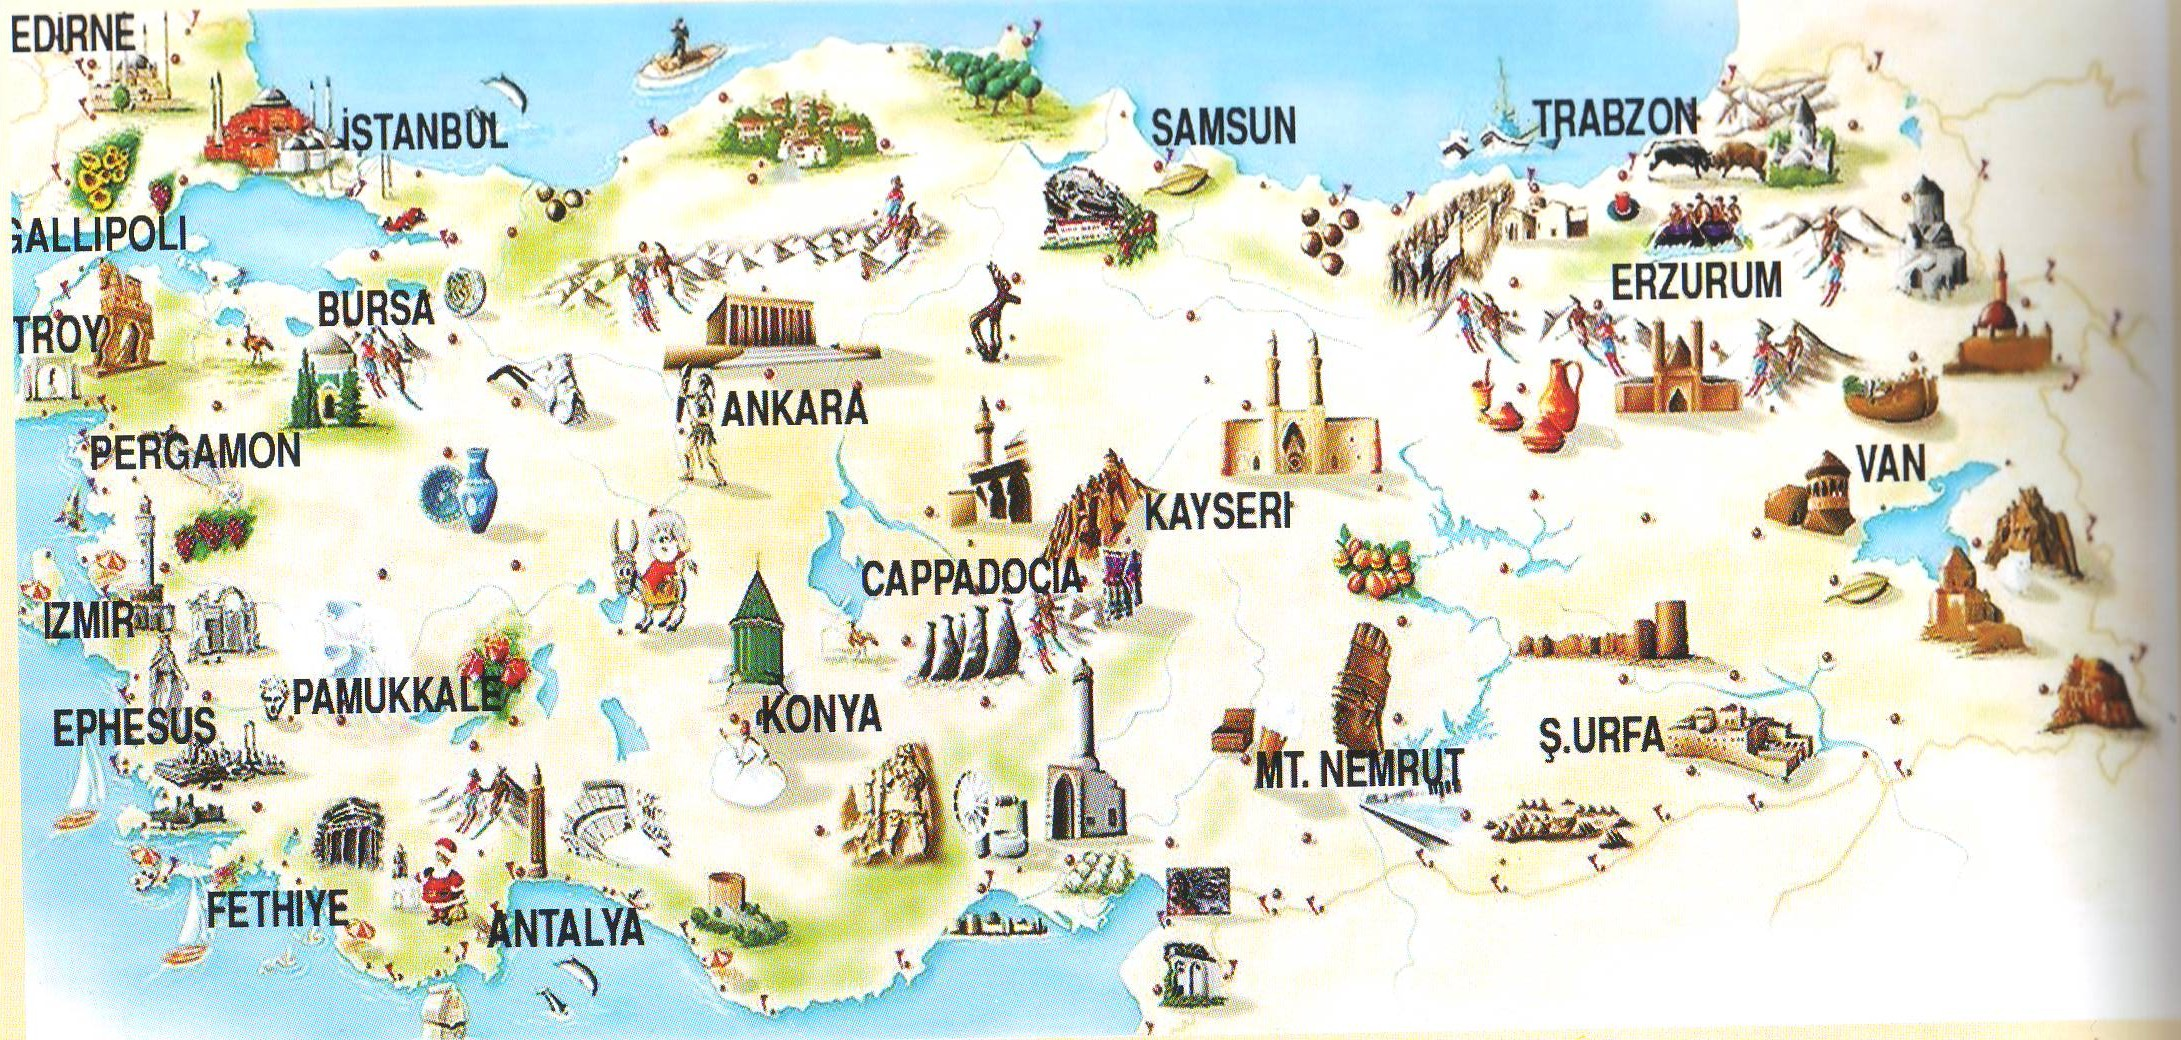 turkey top 5 destinations